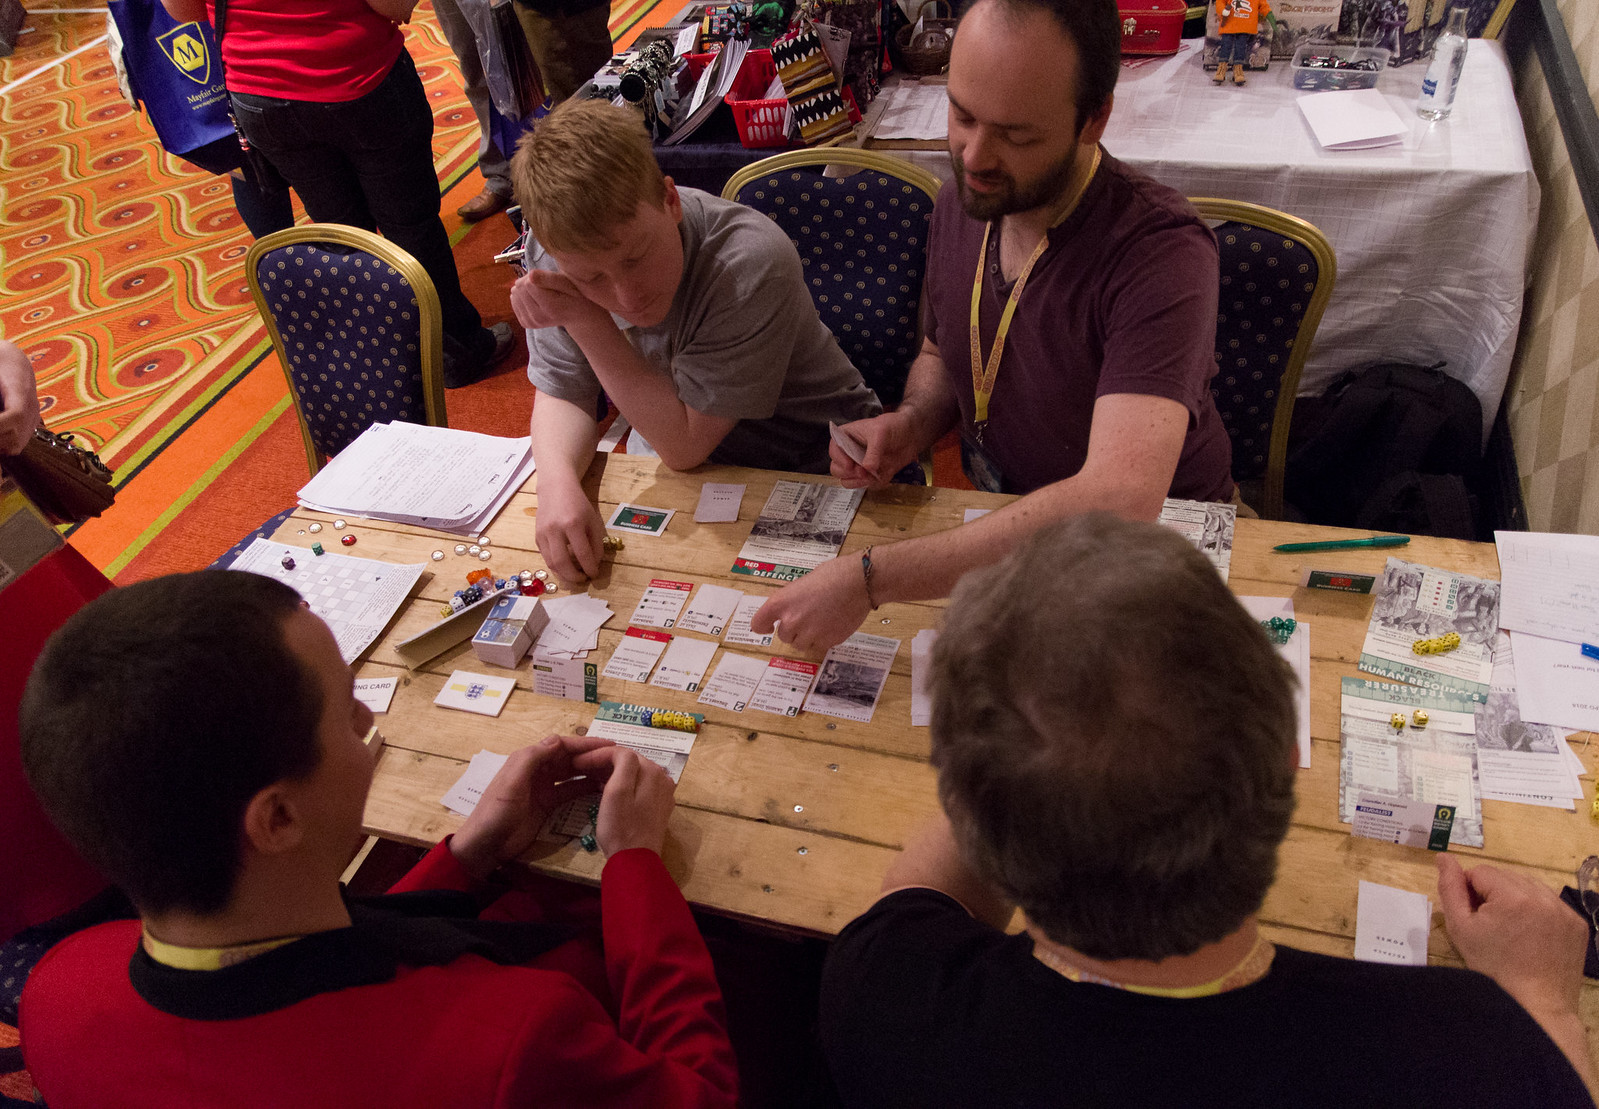 A picture of playtesting at the 2013 UK Games Expo